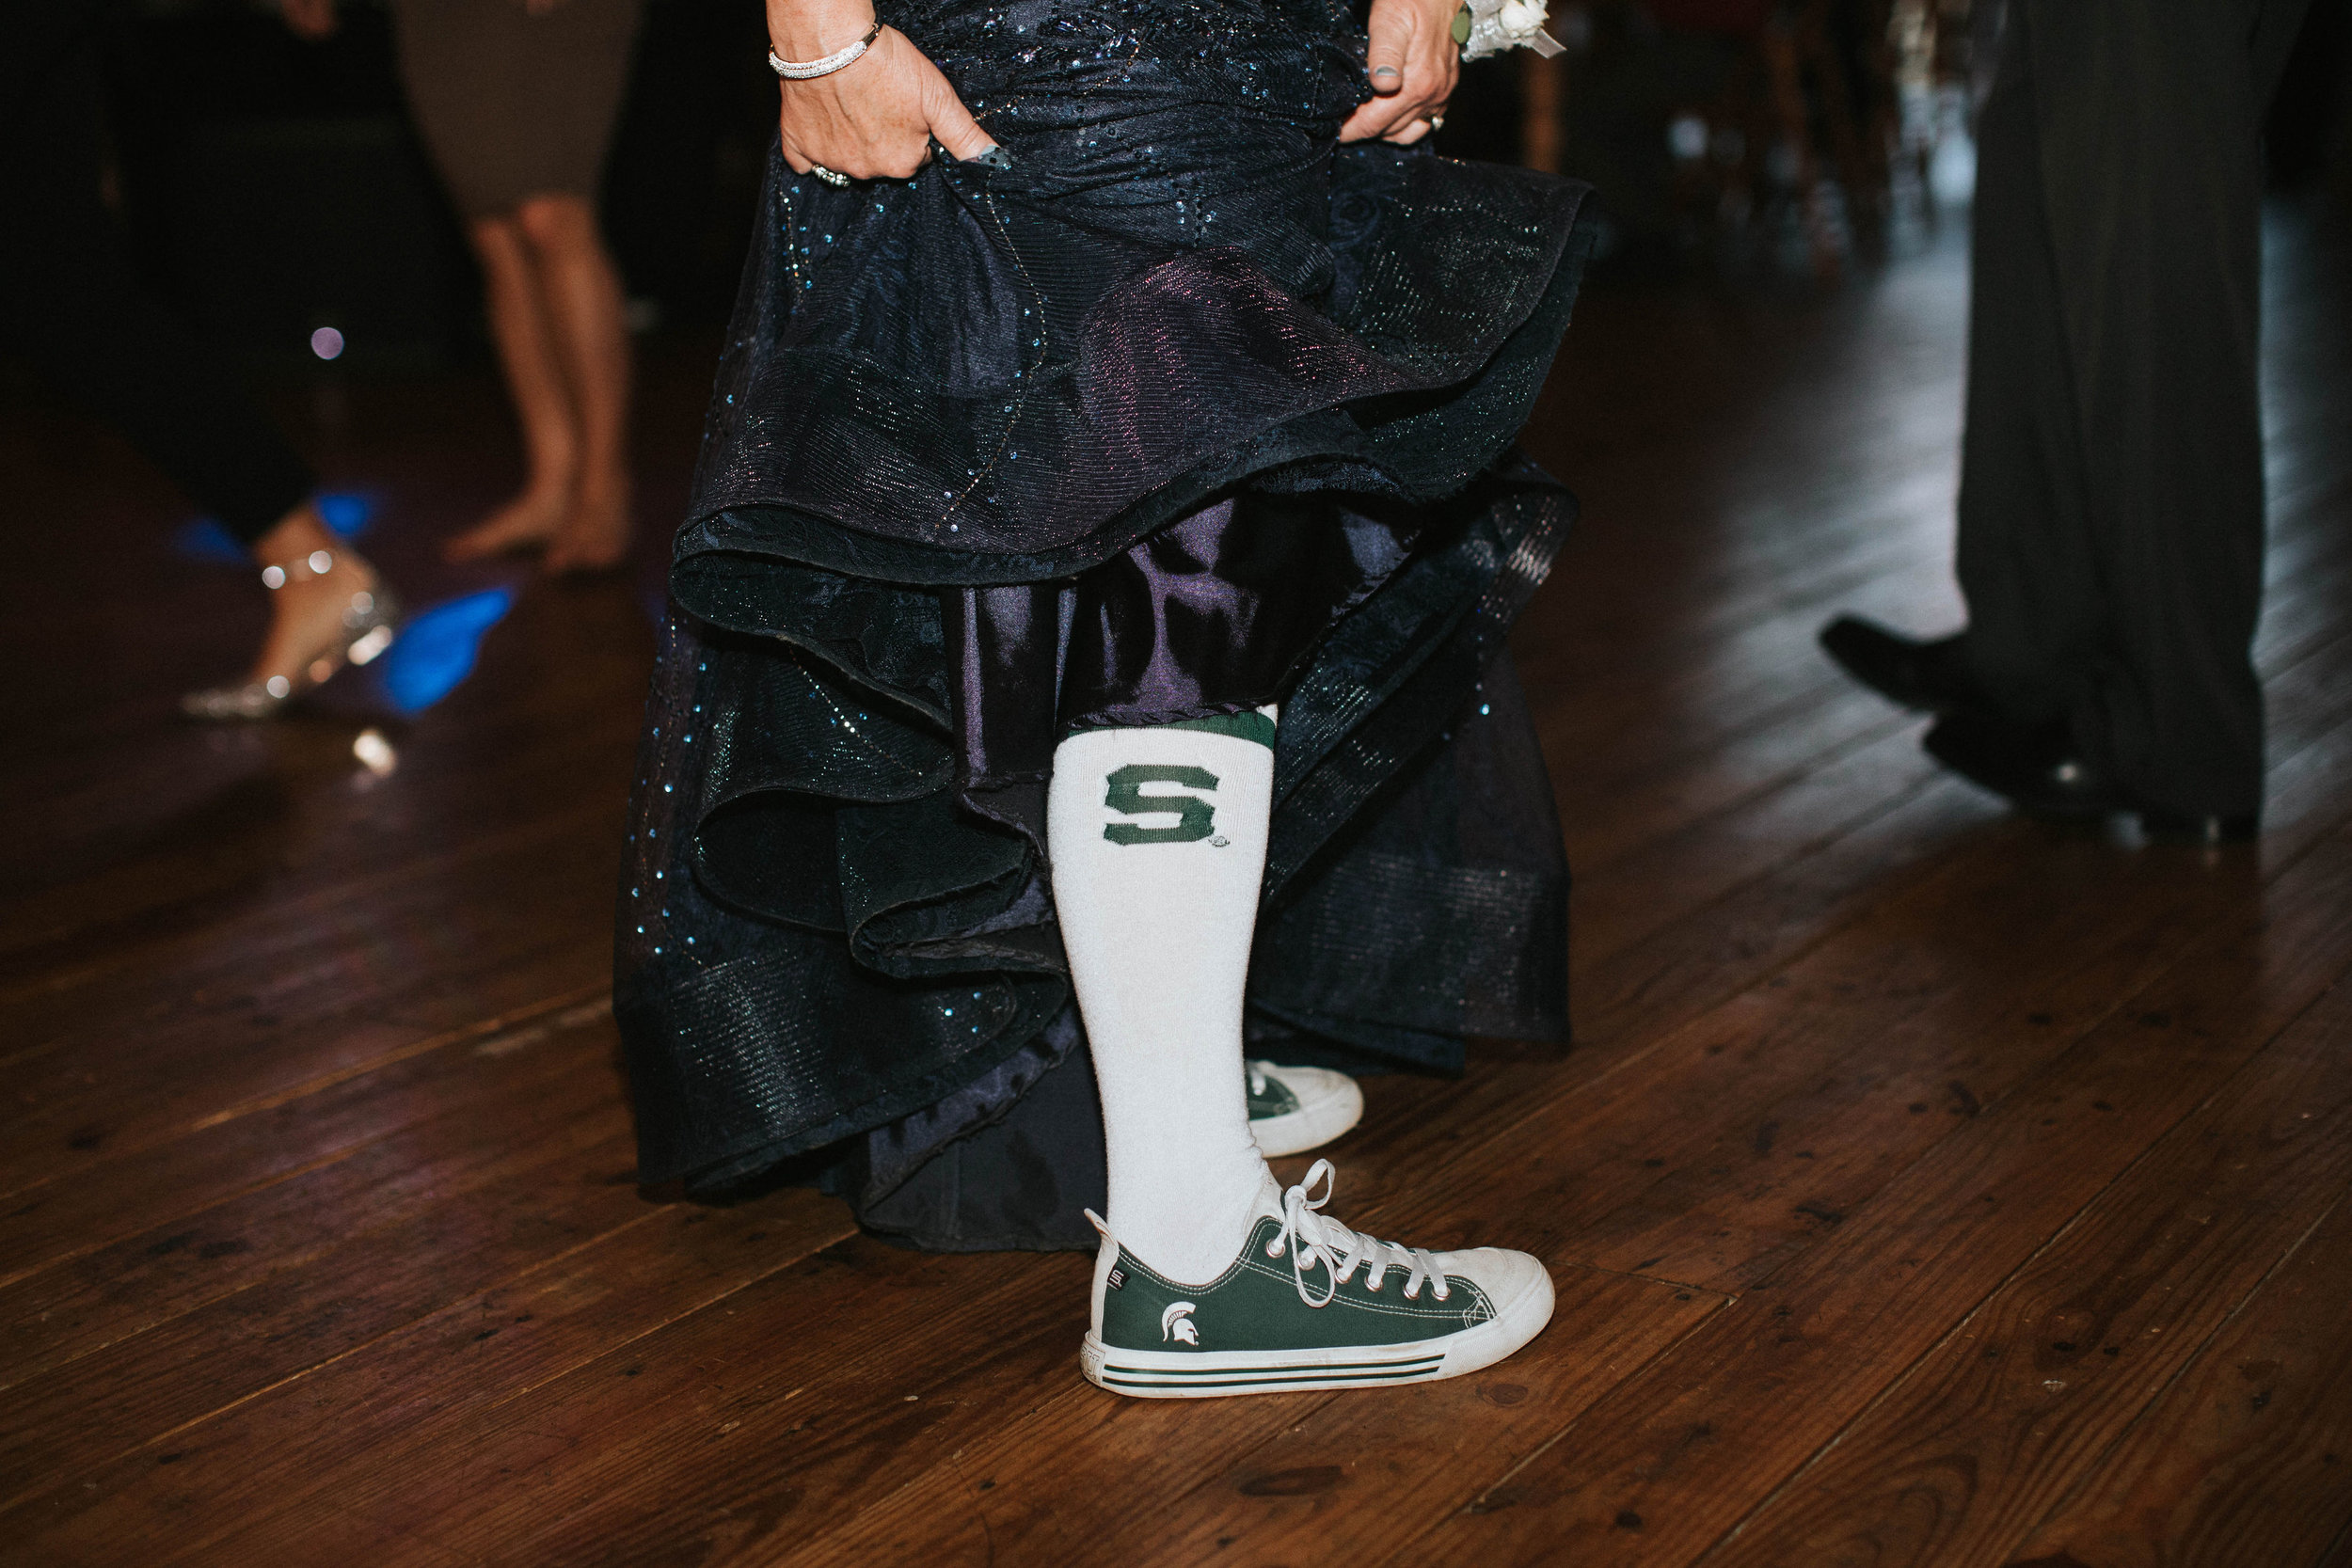 The mother of the groom busted our her MSU sneakers and socks for dancing!